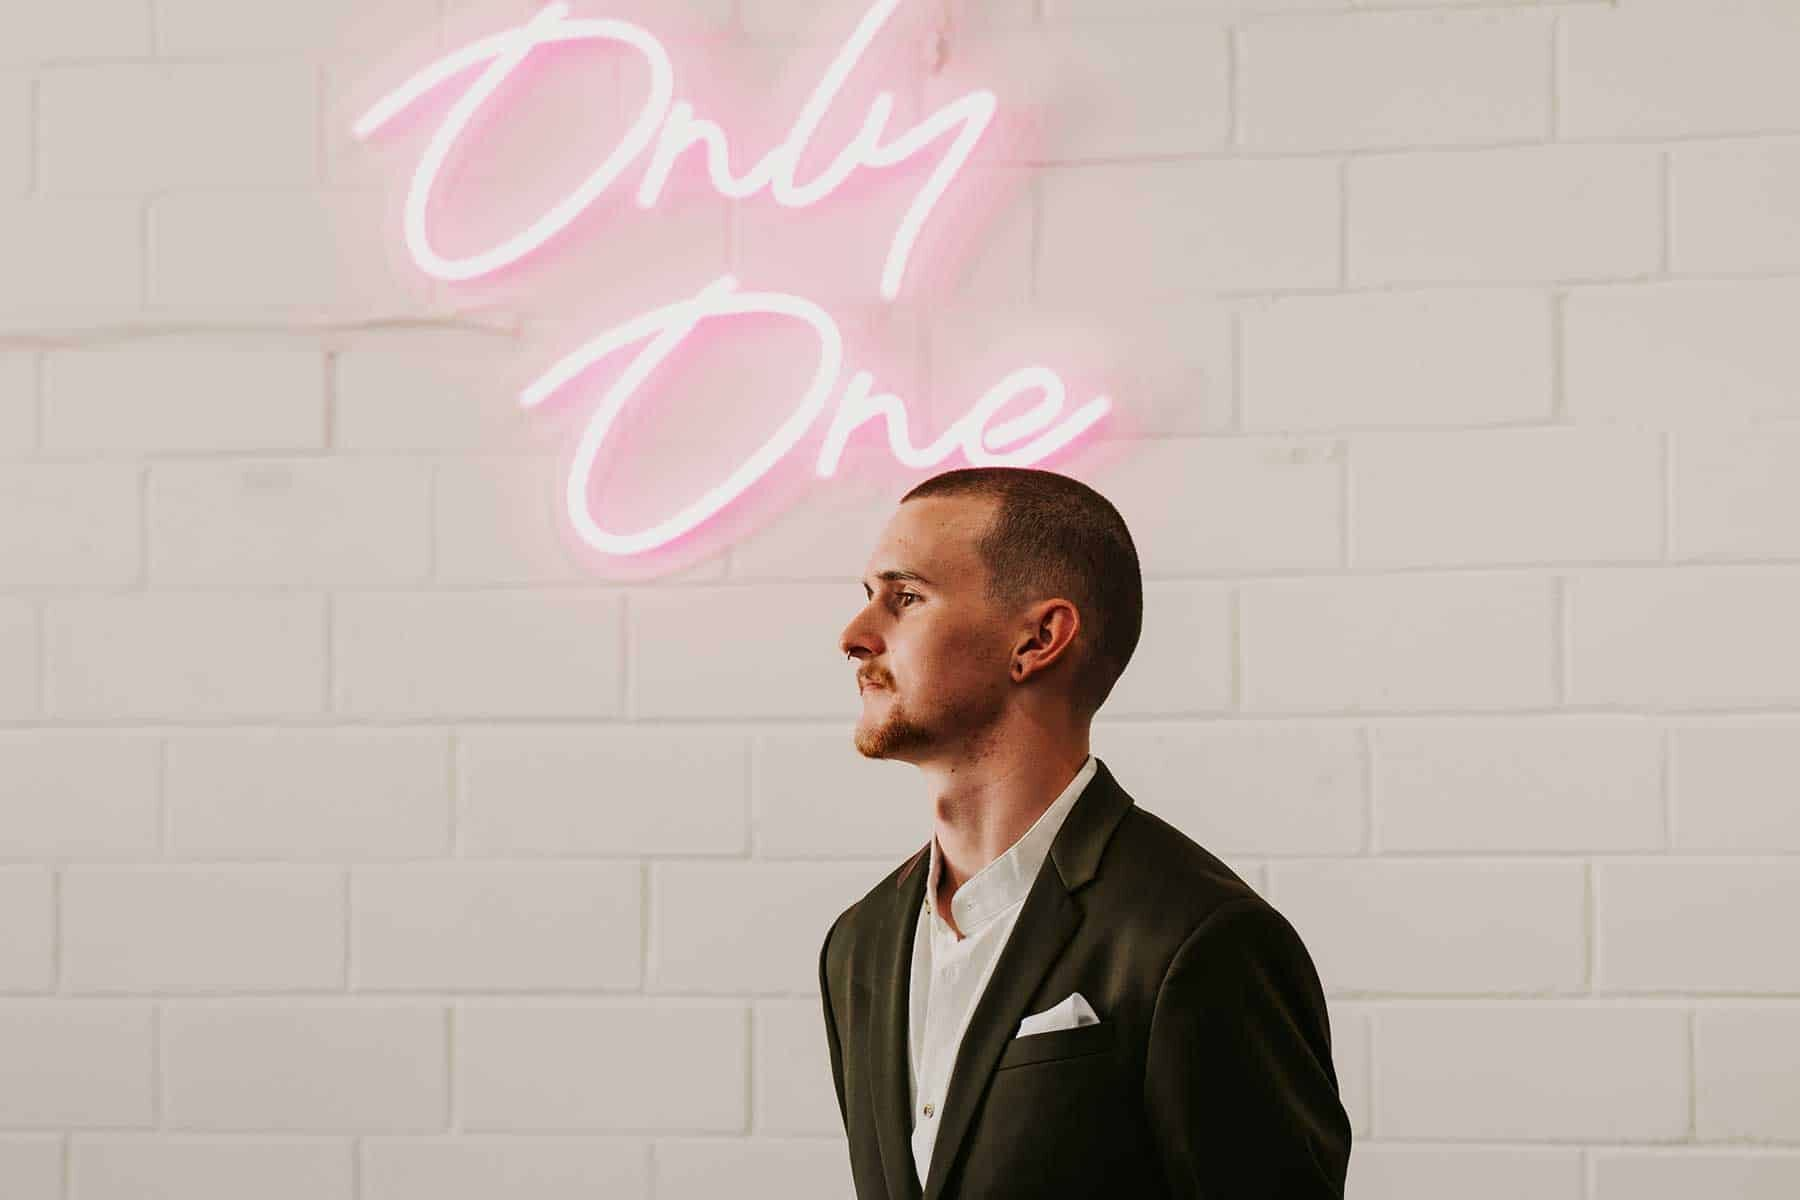 Only one neon wedding sigh